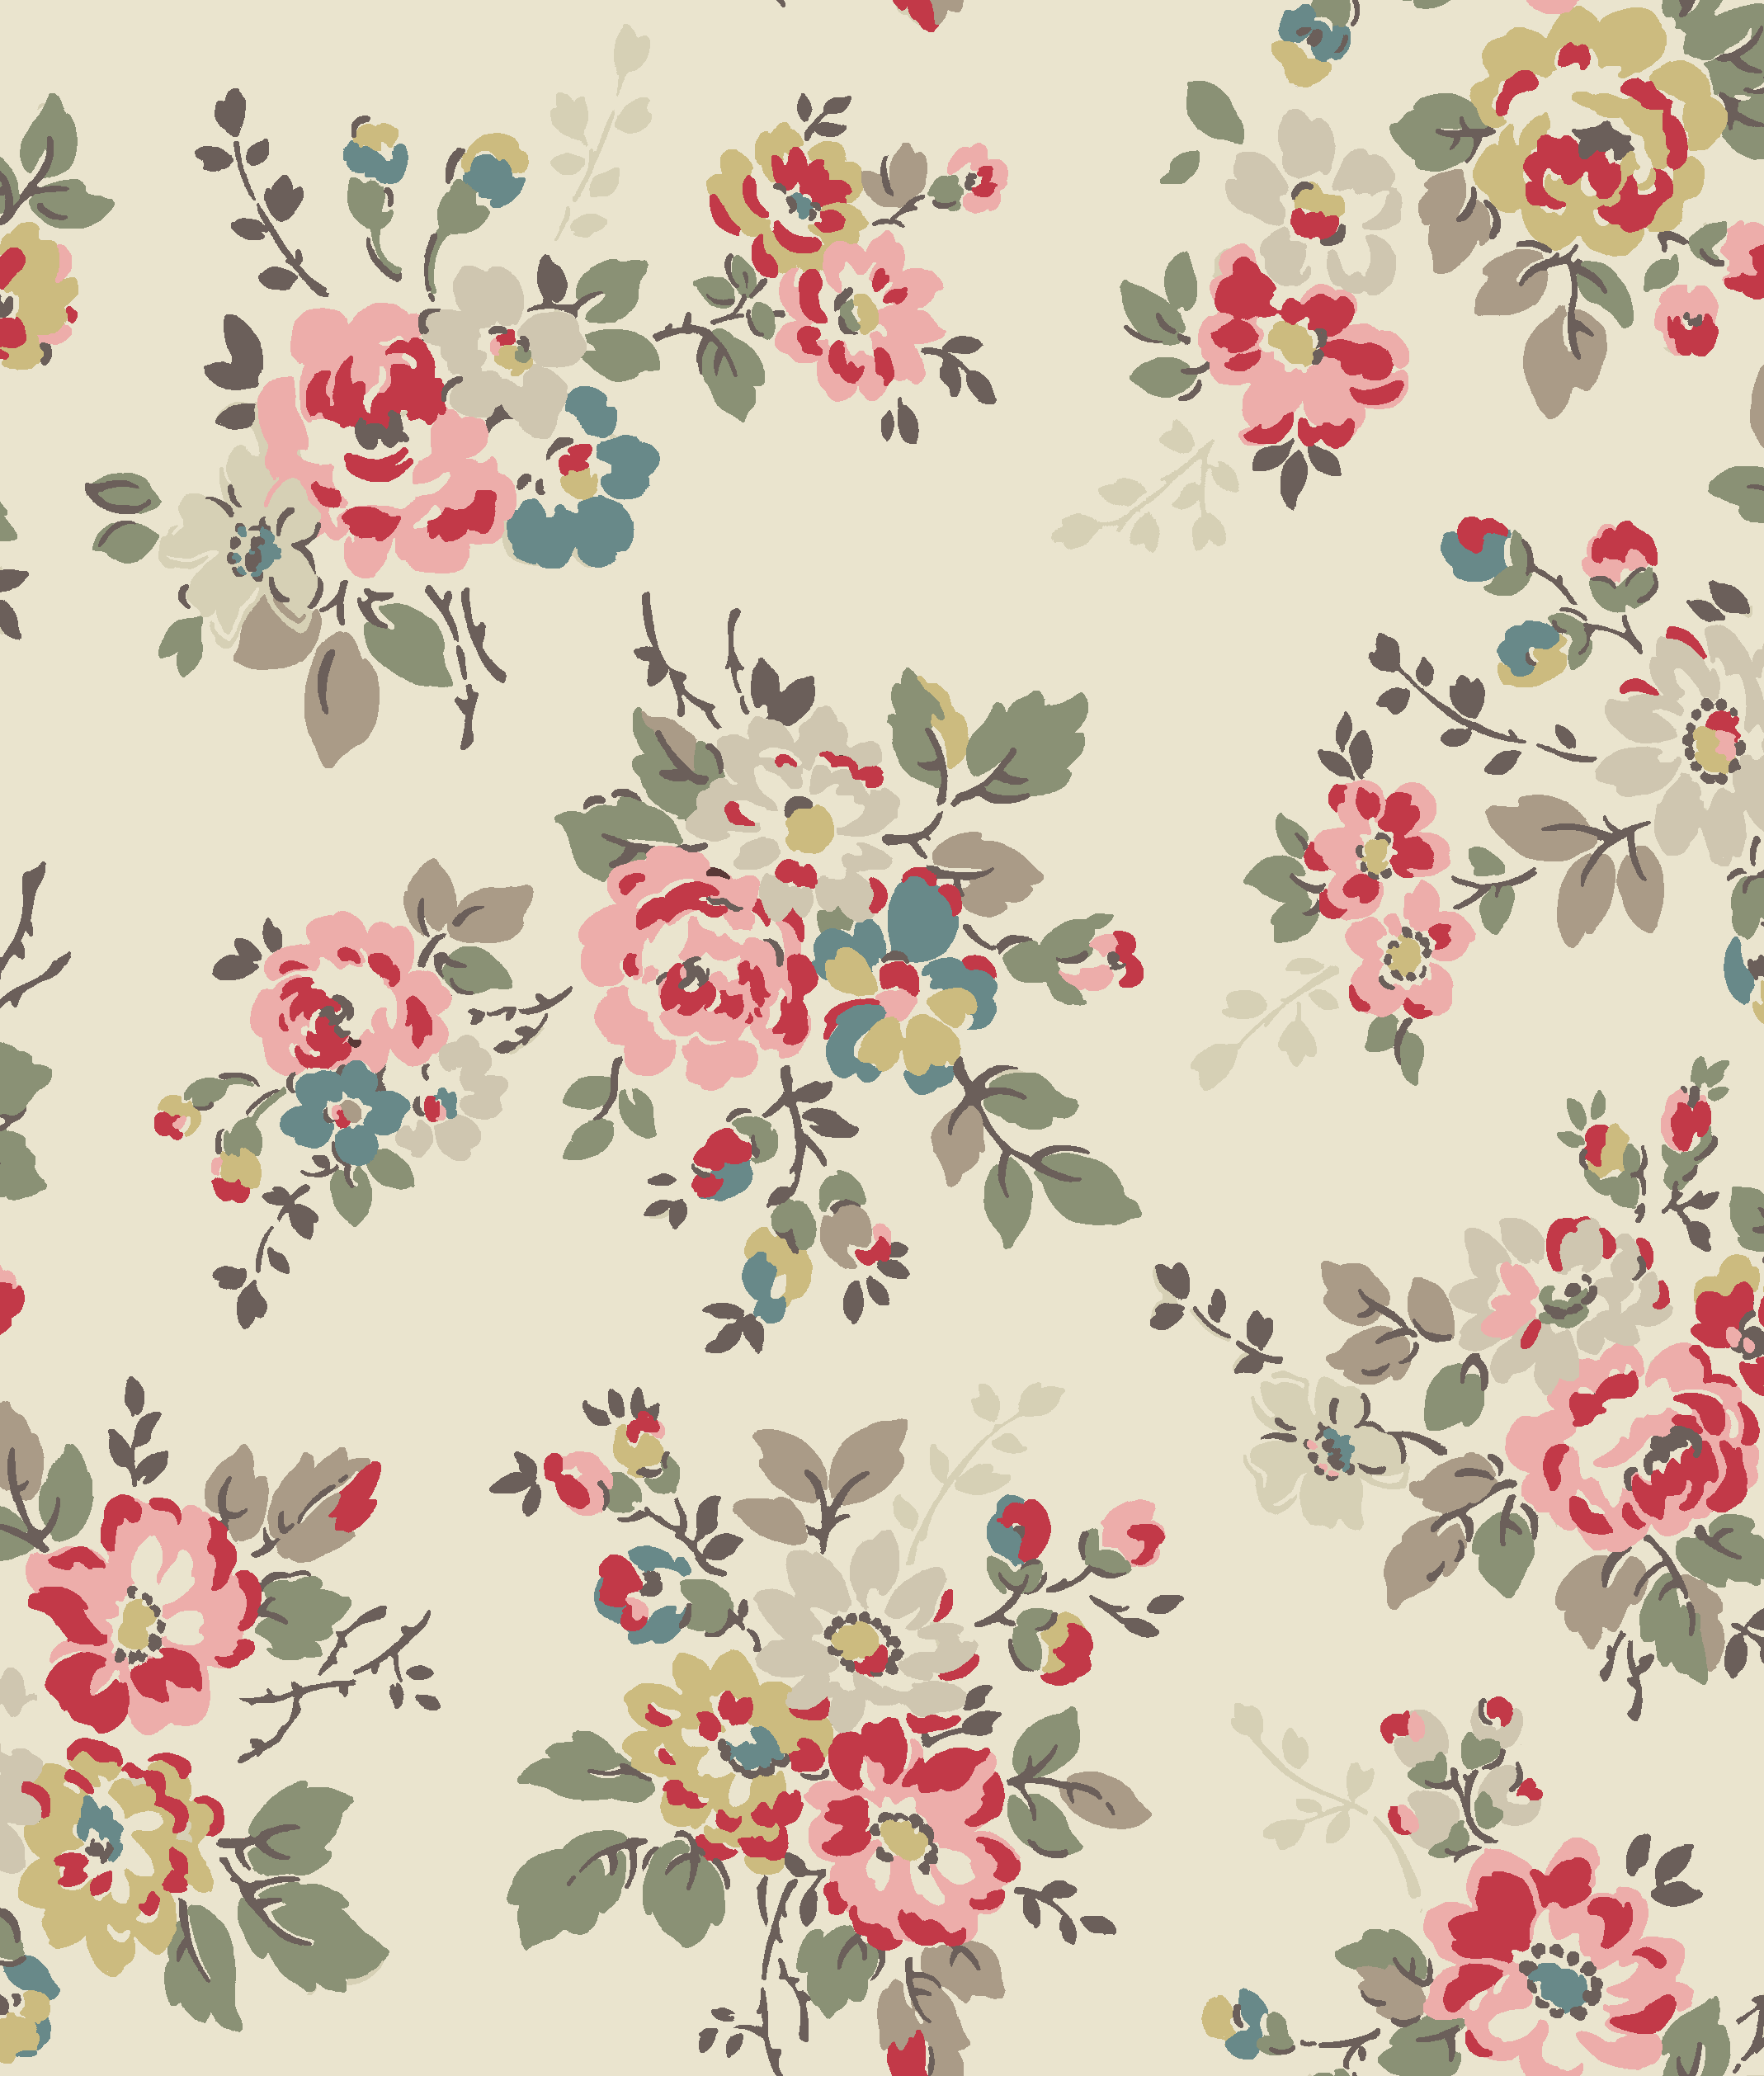 2138x2516 Gallery Floral Patterns To Print,